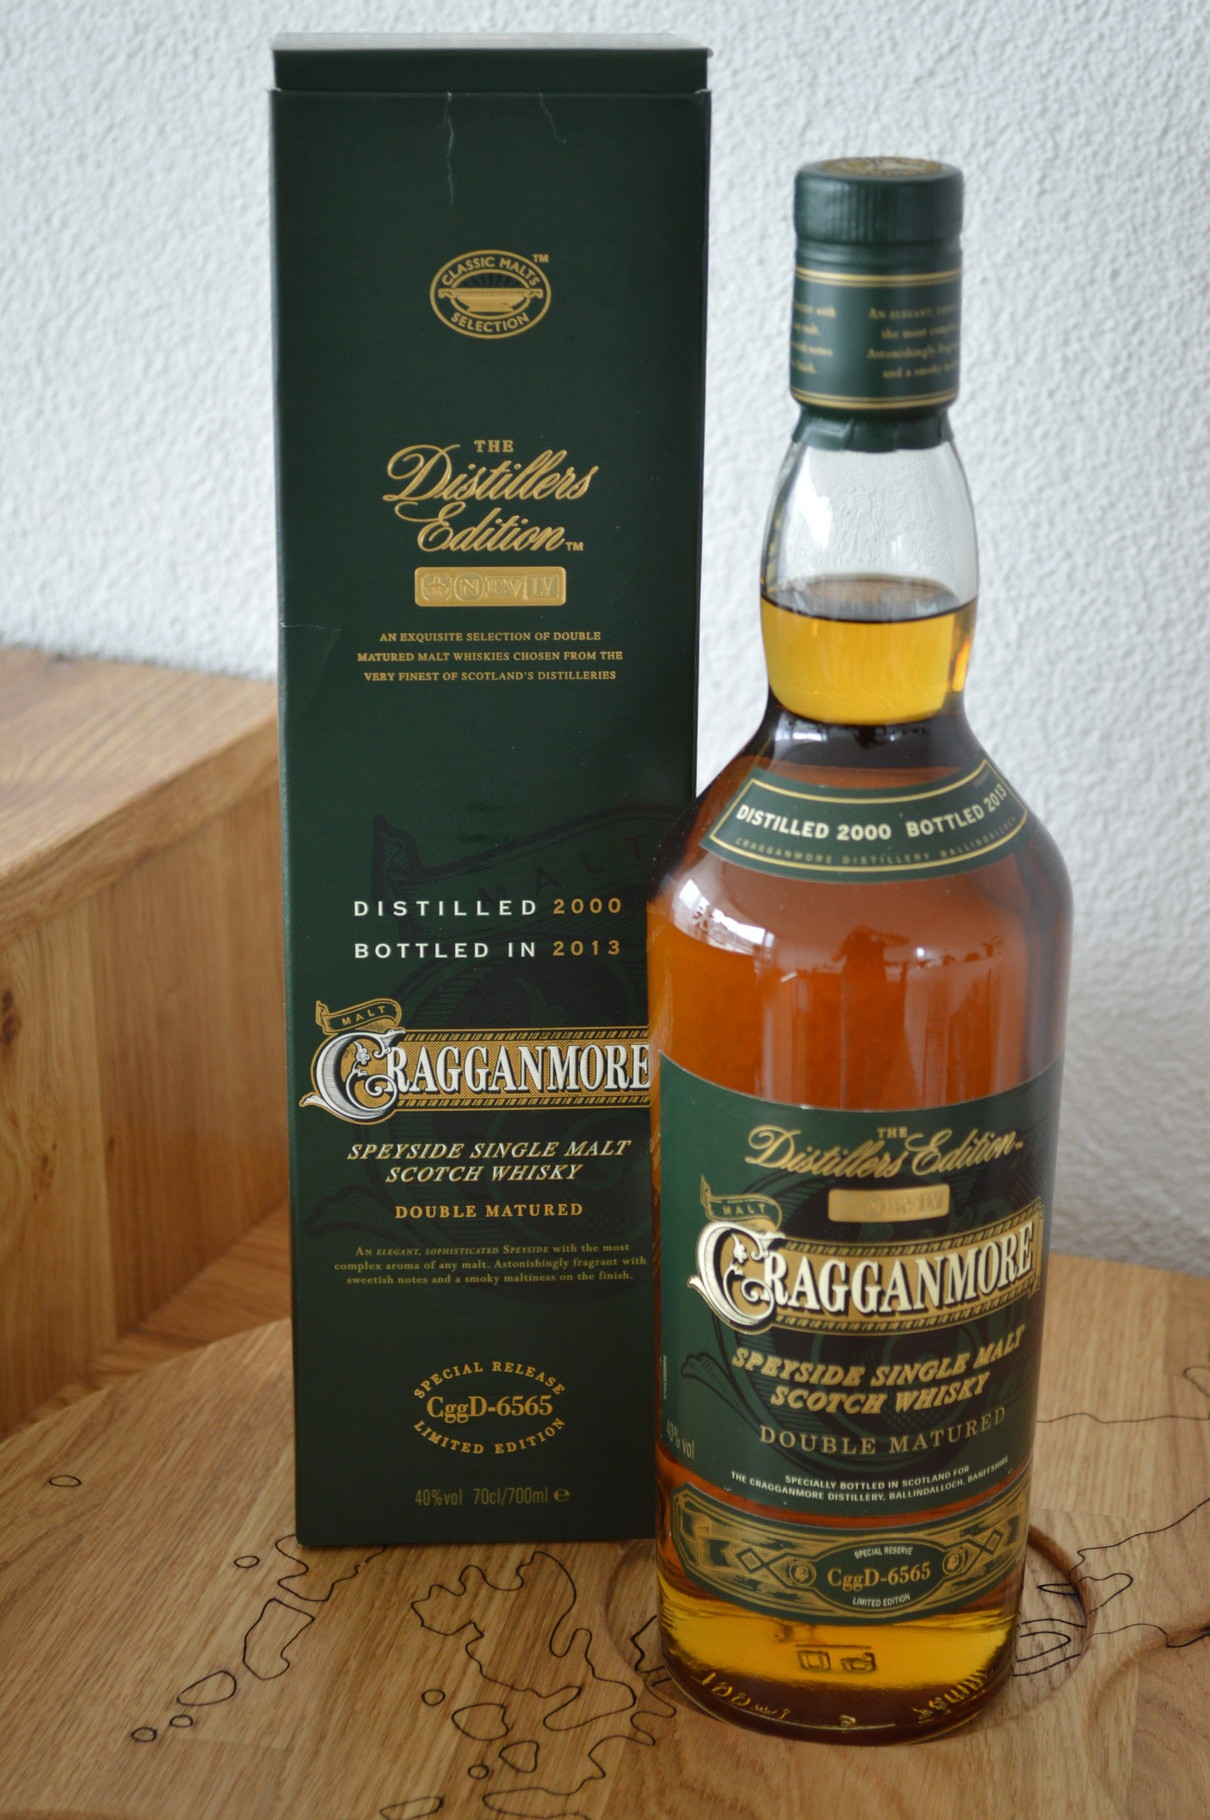 SPEYSIDE - Cragganmore* - Aged: 12 years - Bottler: Original - 70cl - 40% - The Distillers Edition